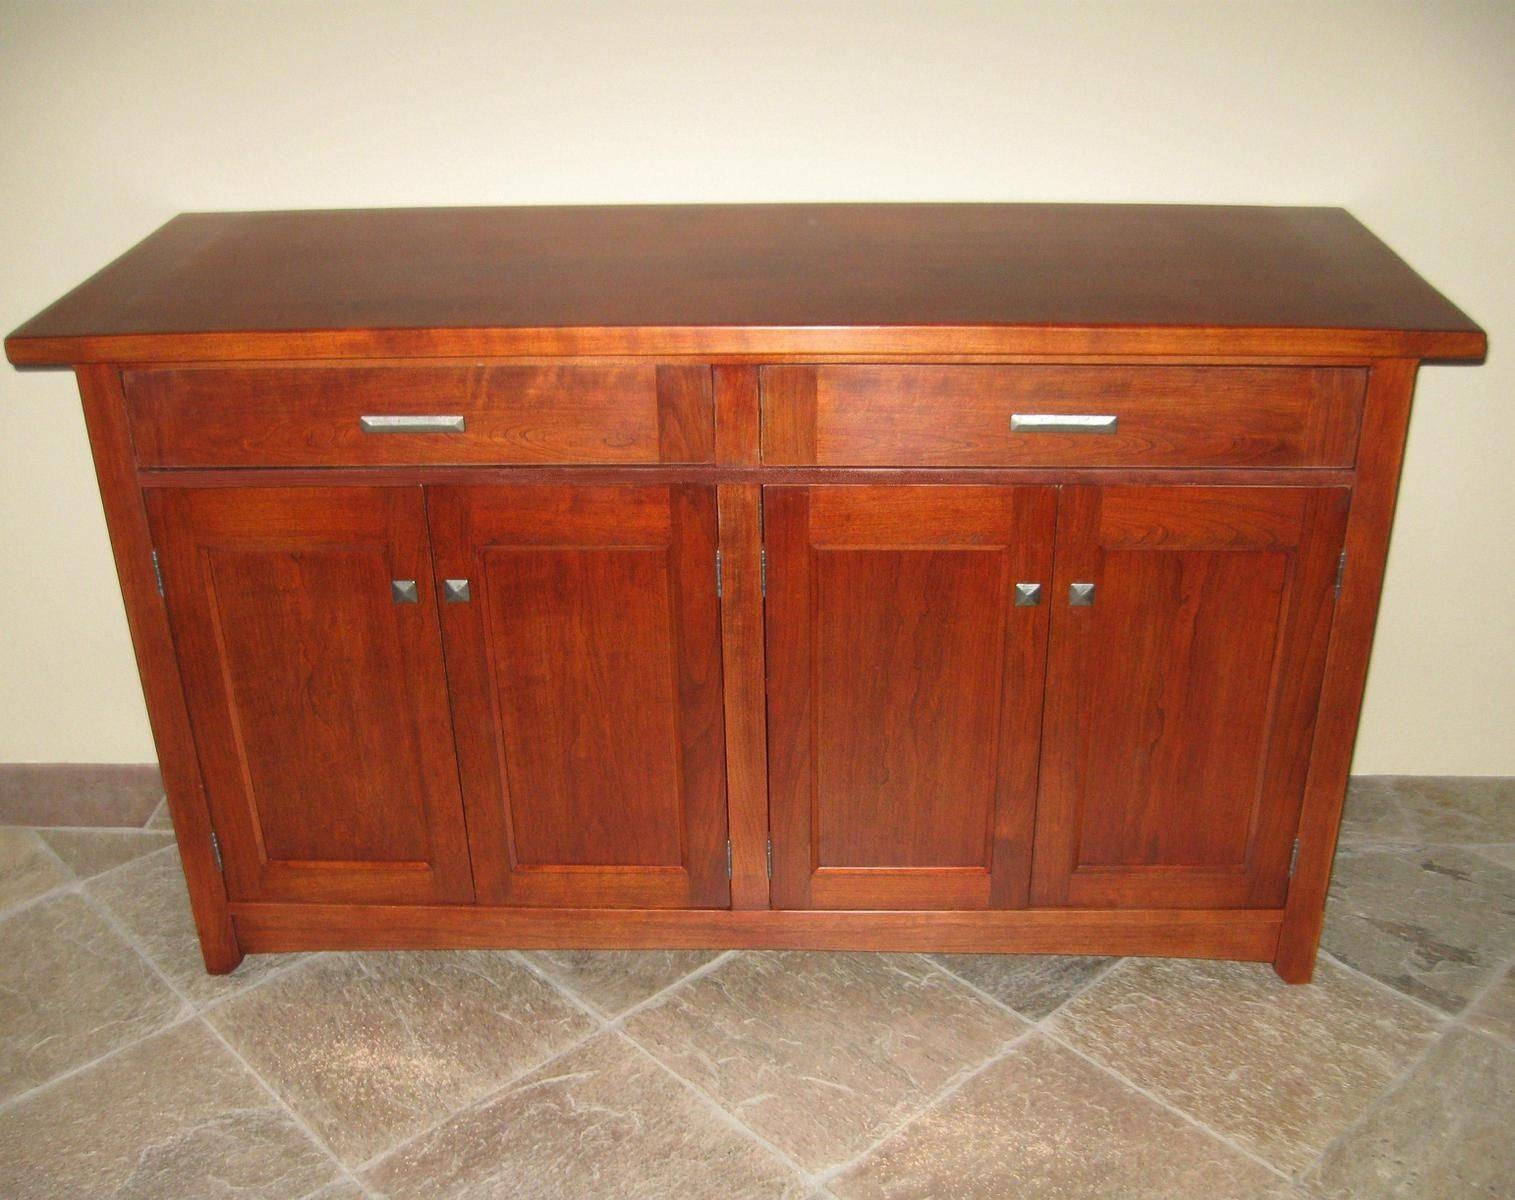 Custom Cherry Sideboardalexander Woodworking | Custommade Regarding Cherry Sideboards (View 2 of 15)